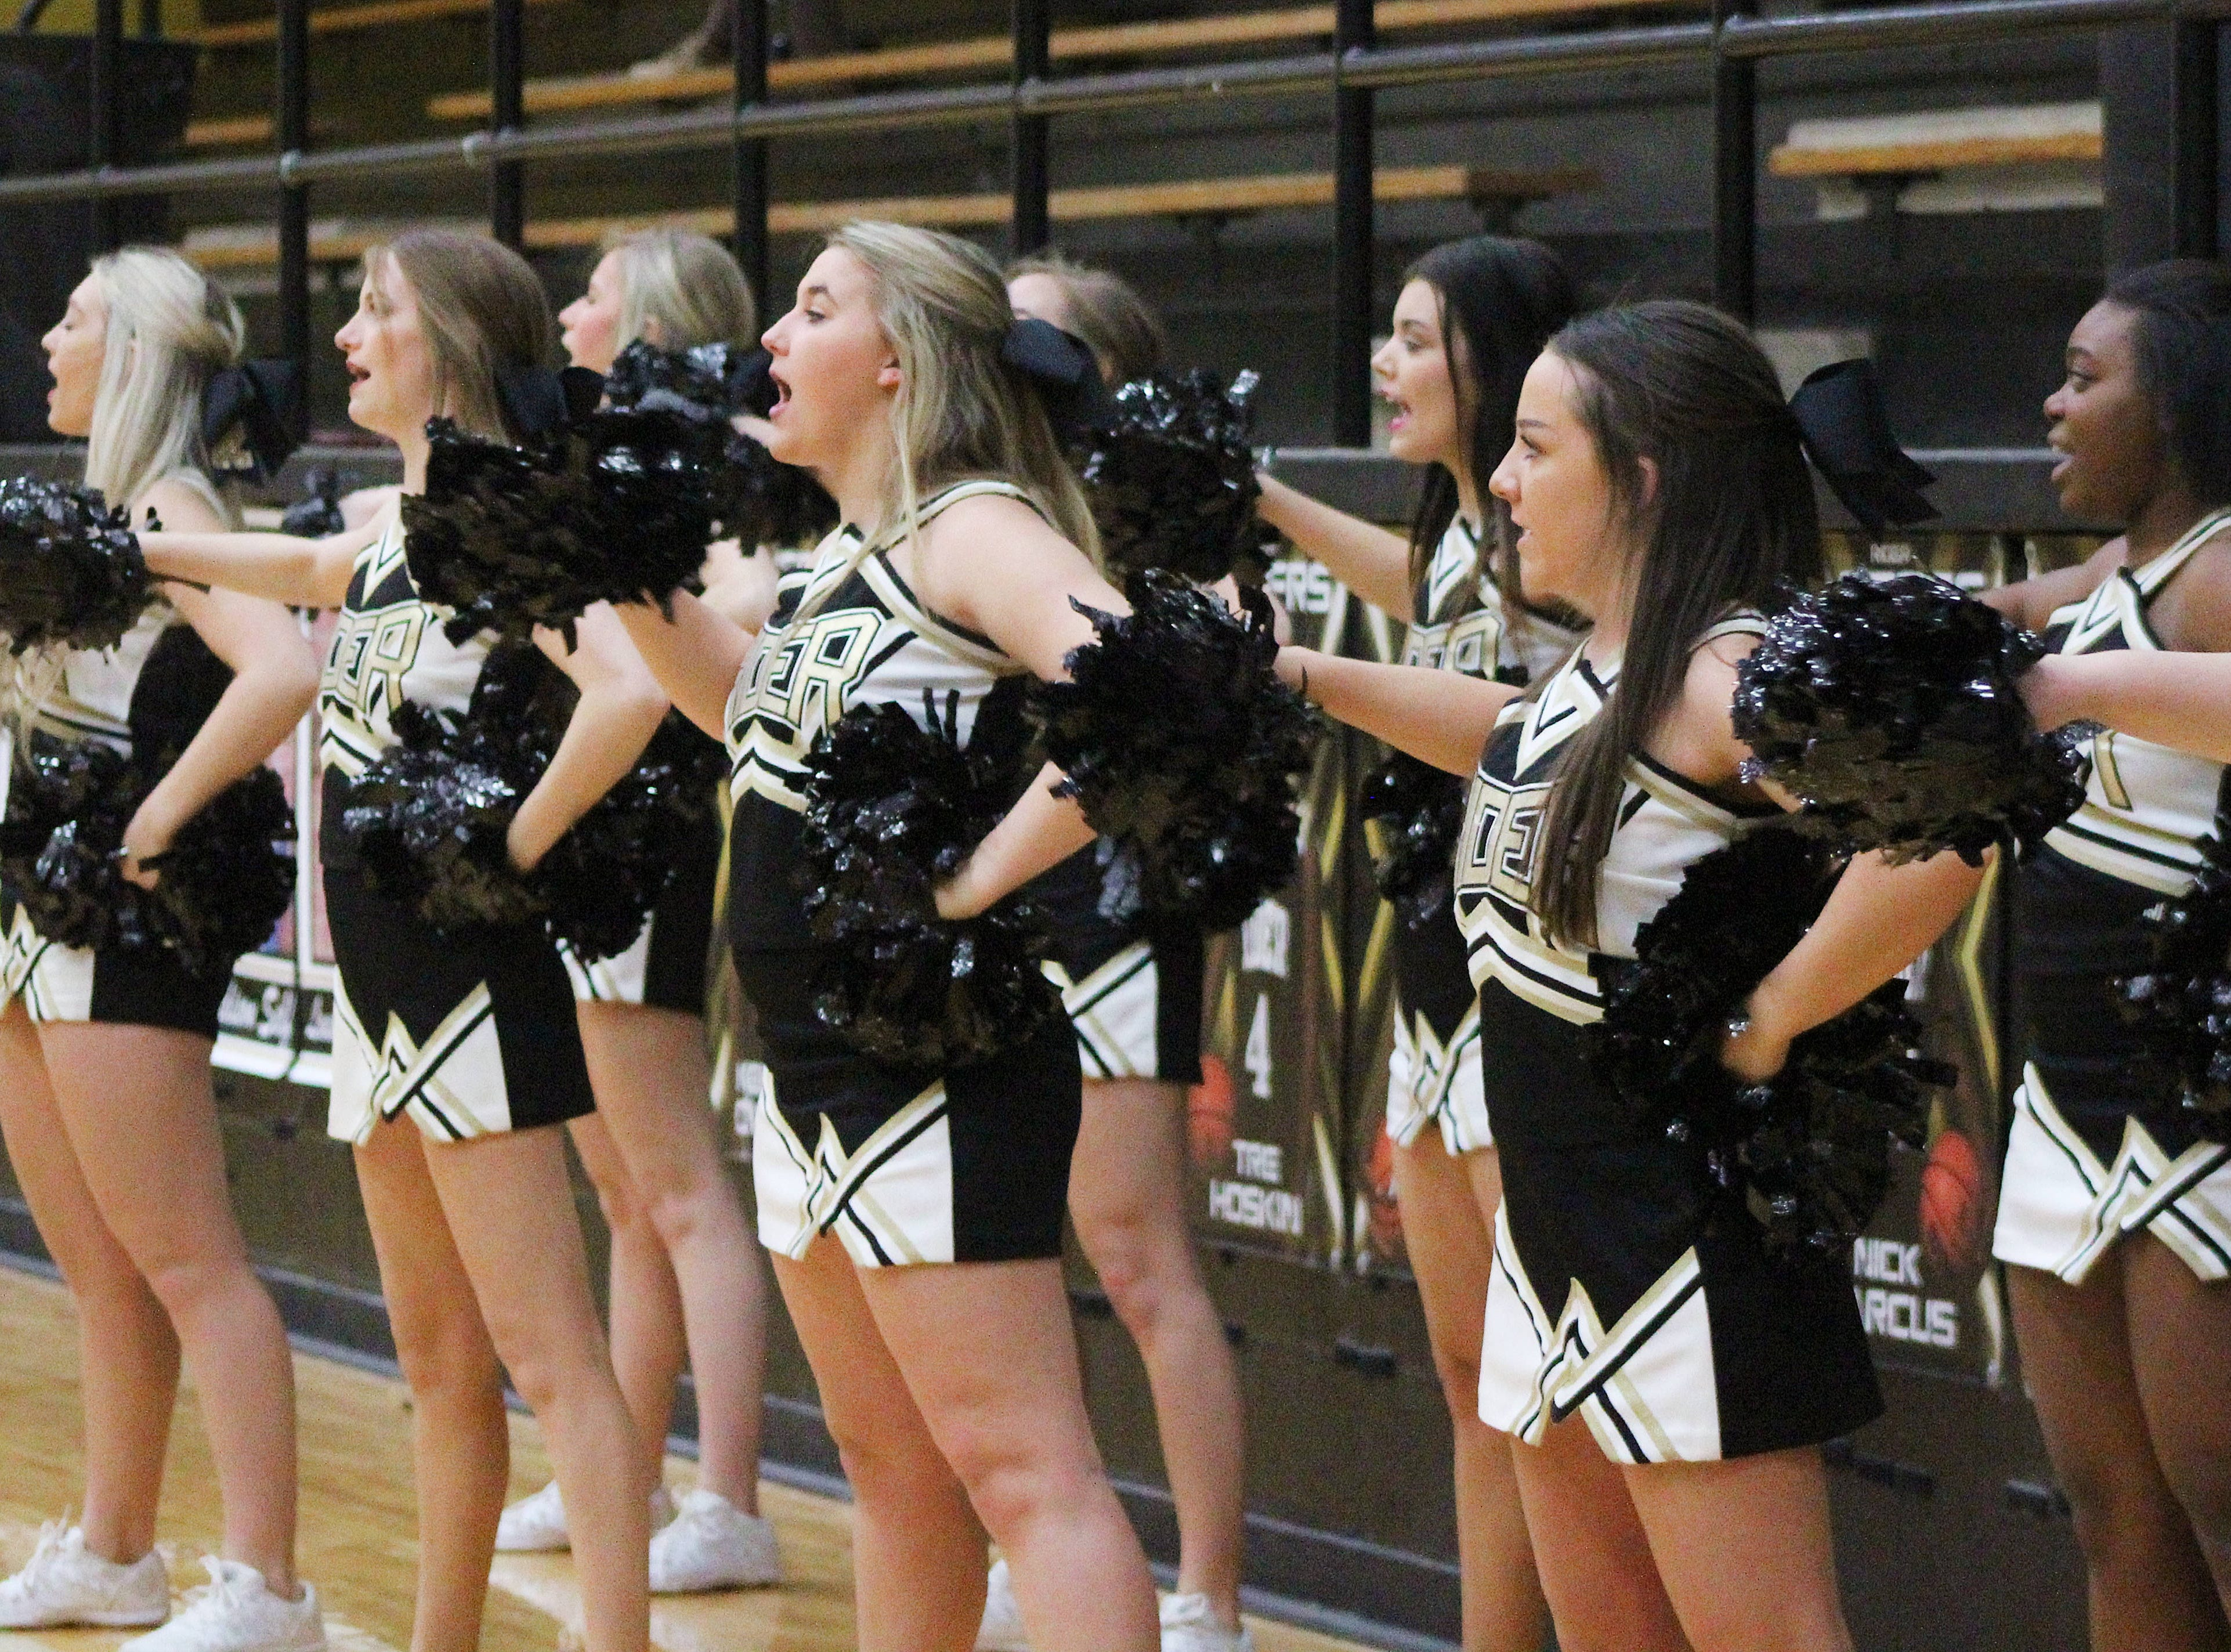 Rider cheerleaders encourage the team from the sideline as they defeat Abilene Wylie 54-37.